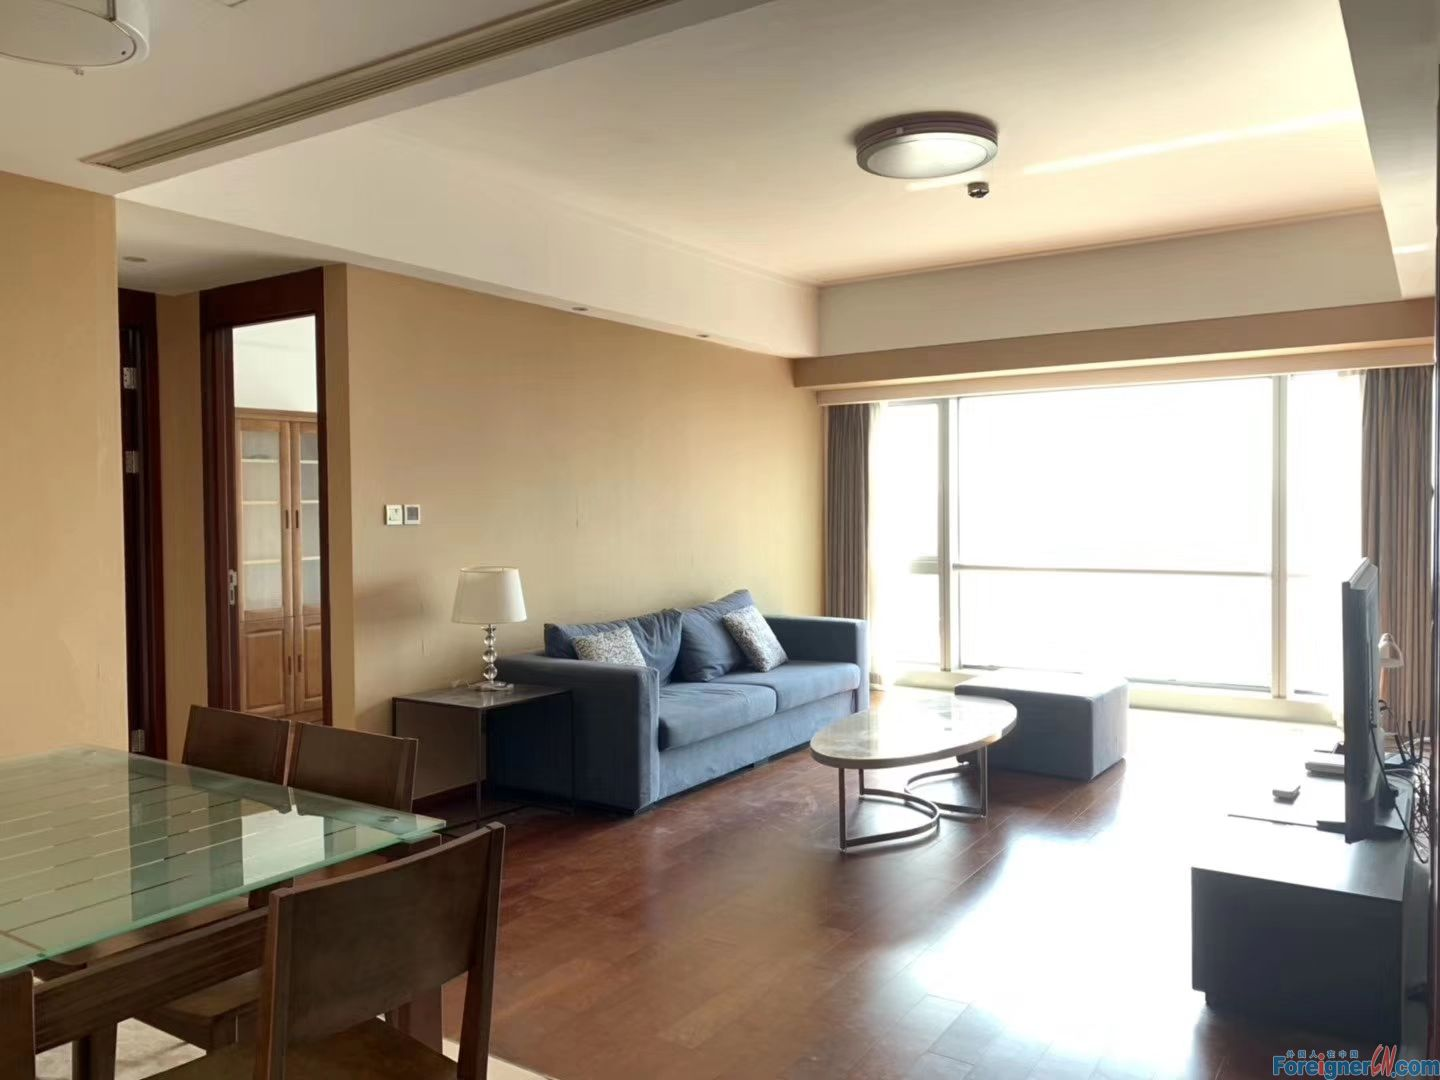 3 bed apartment for rent in Eton,Zhongshan.